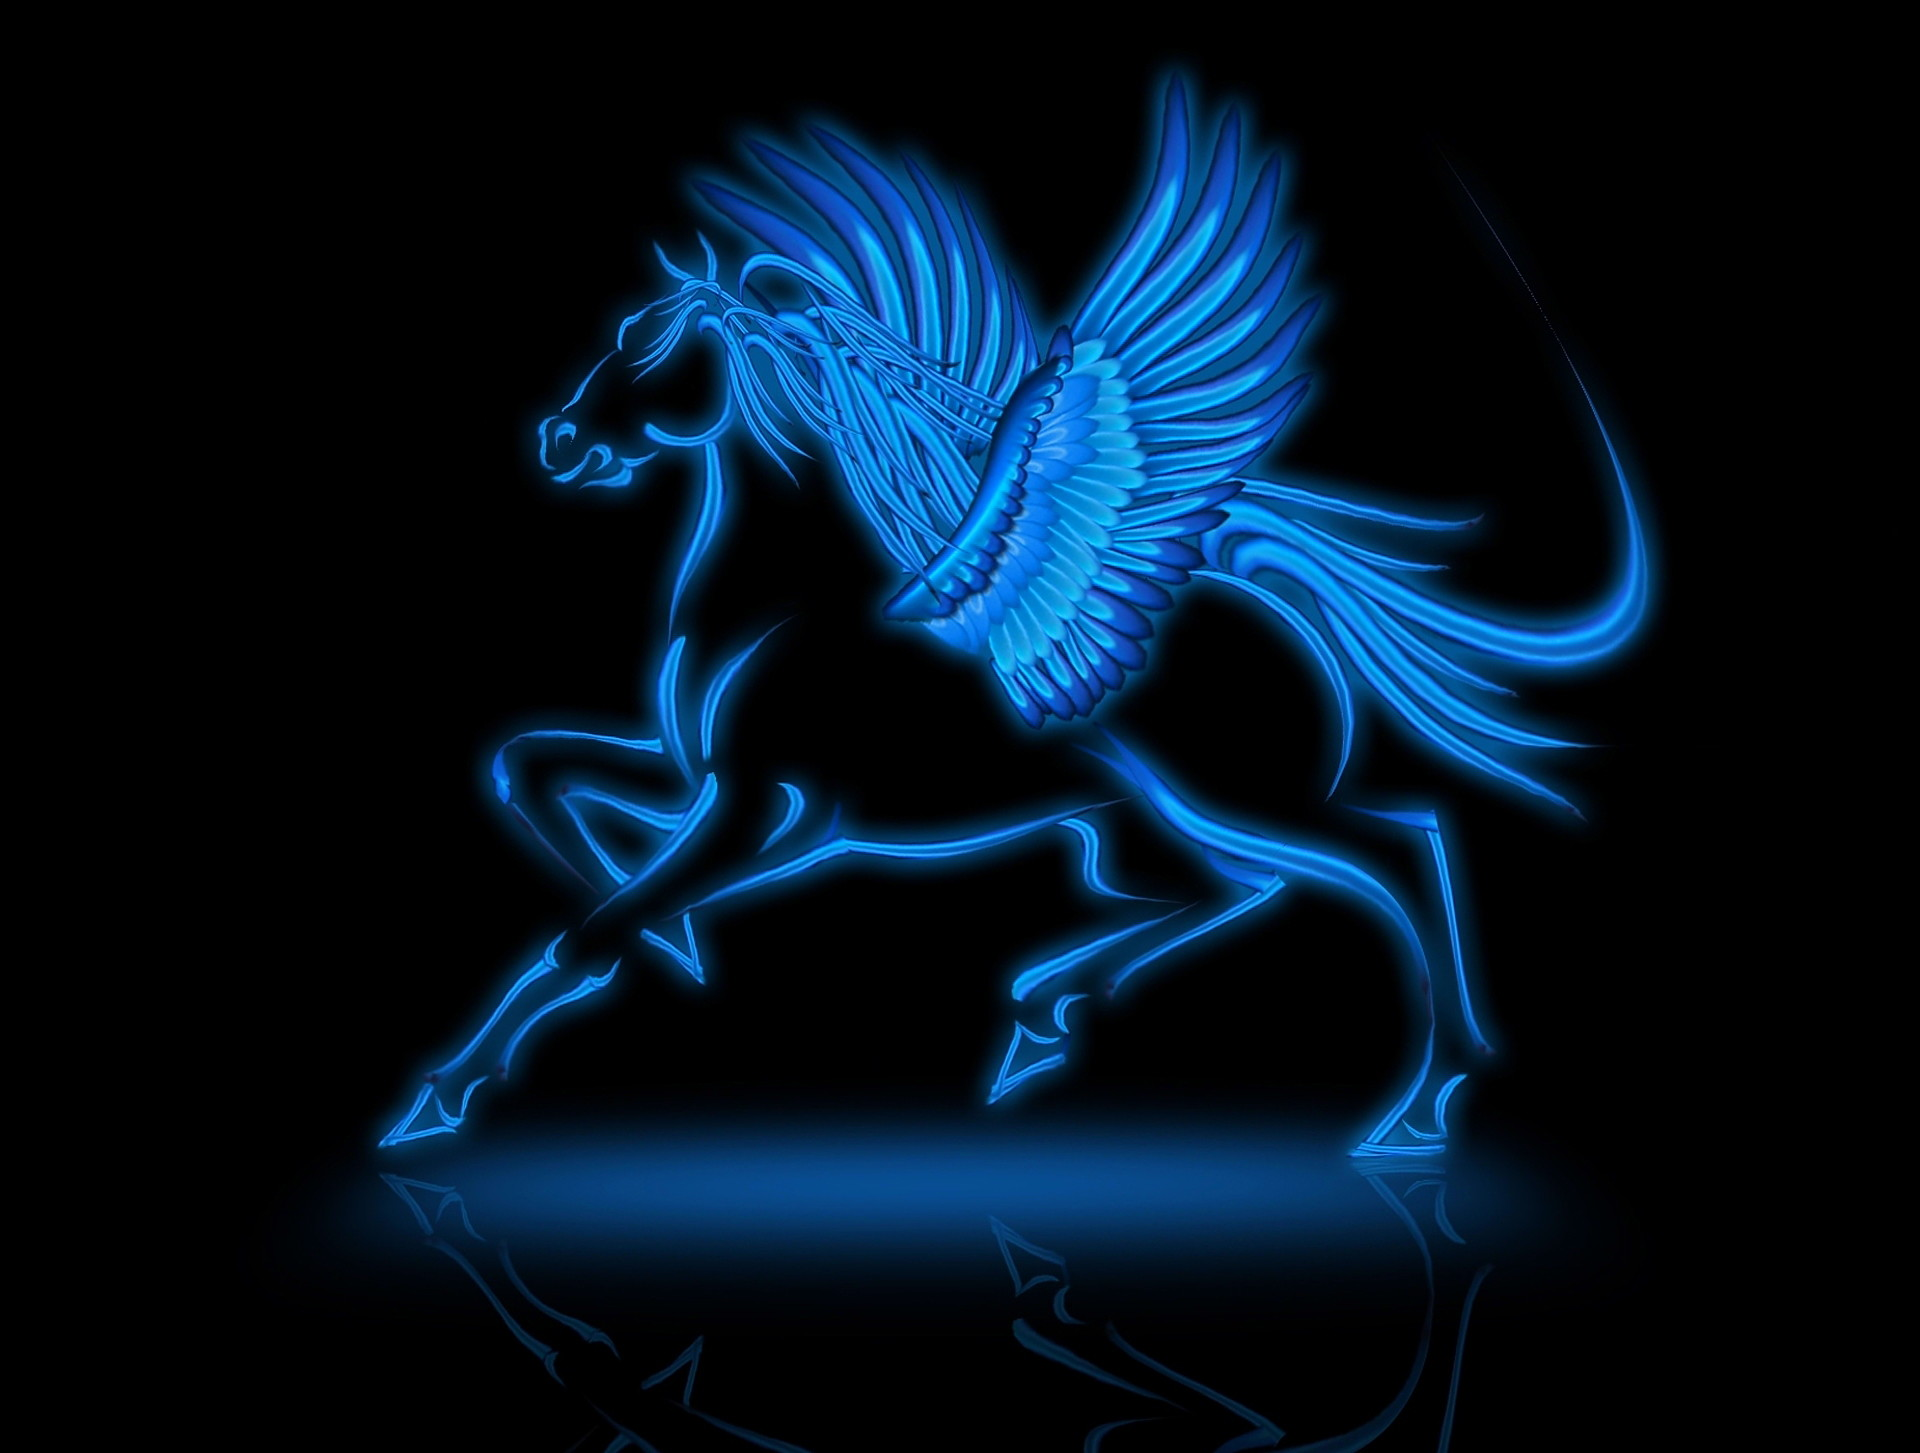 1920x1453 ... Horse Animated; Black Fire Wallpapers Group 80; Pegasus  Wallpaper Wallpapers